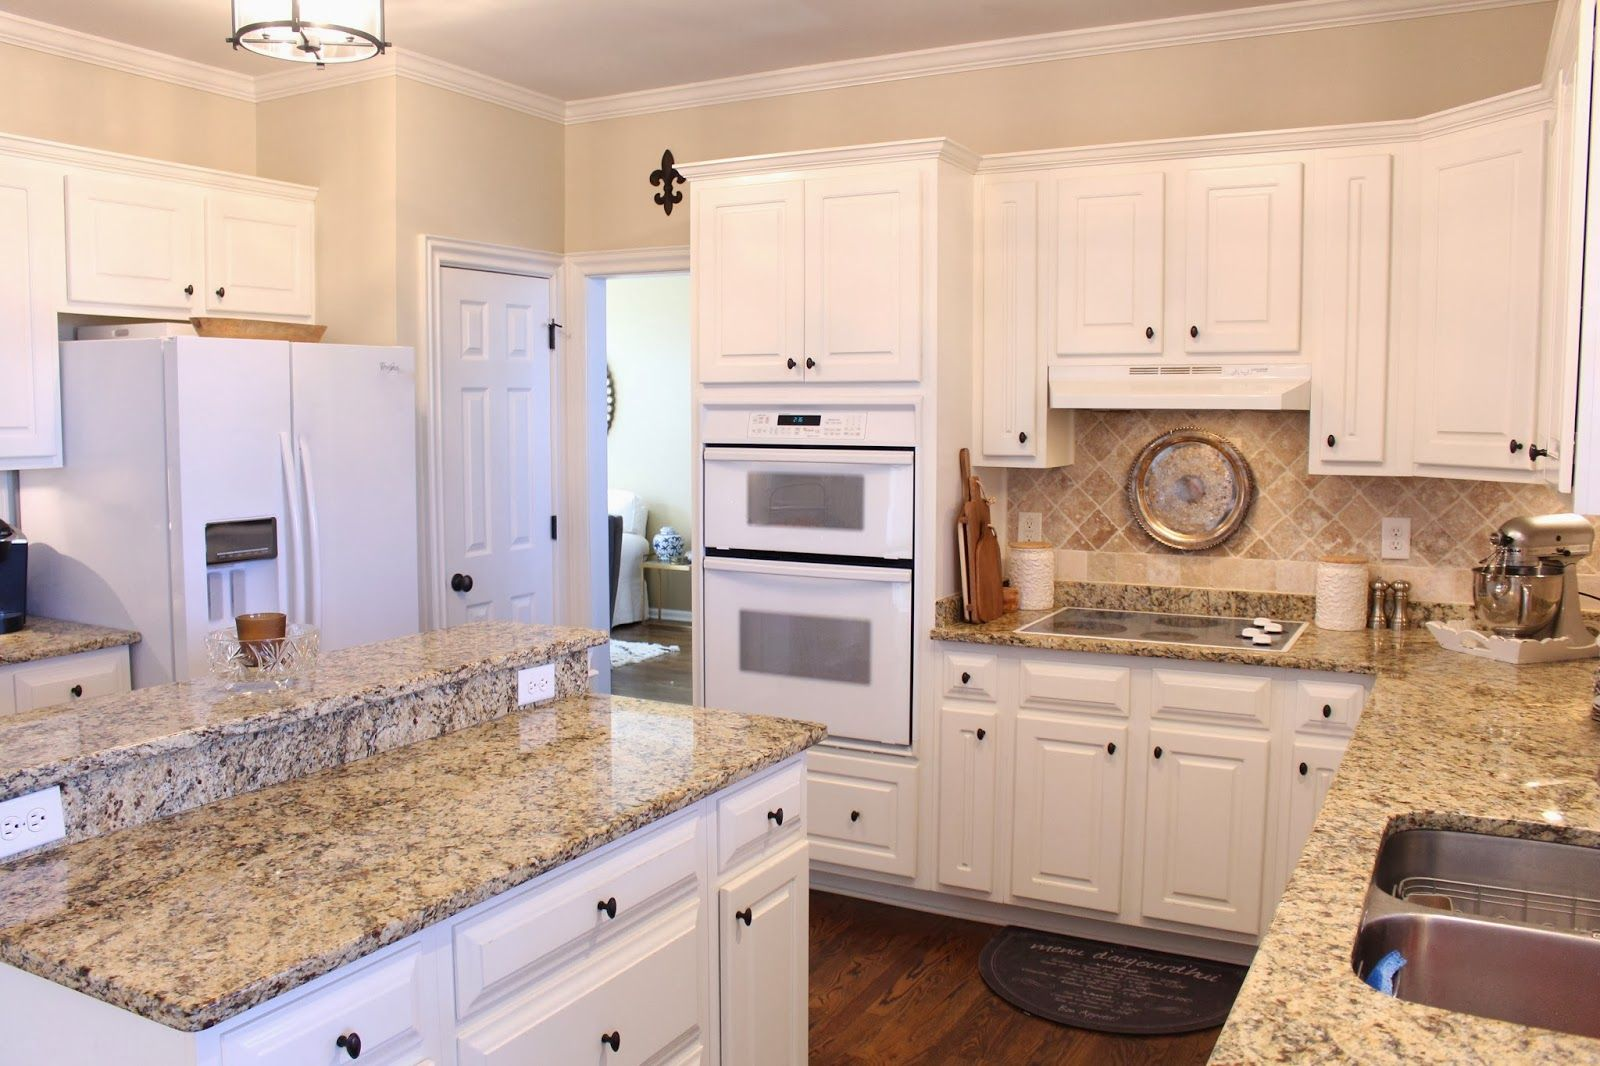 Granite countertop goes up the wall 2quot followed by row of for Kitchen colors with white cabinets with wall art stone